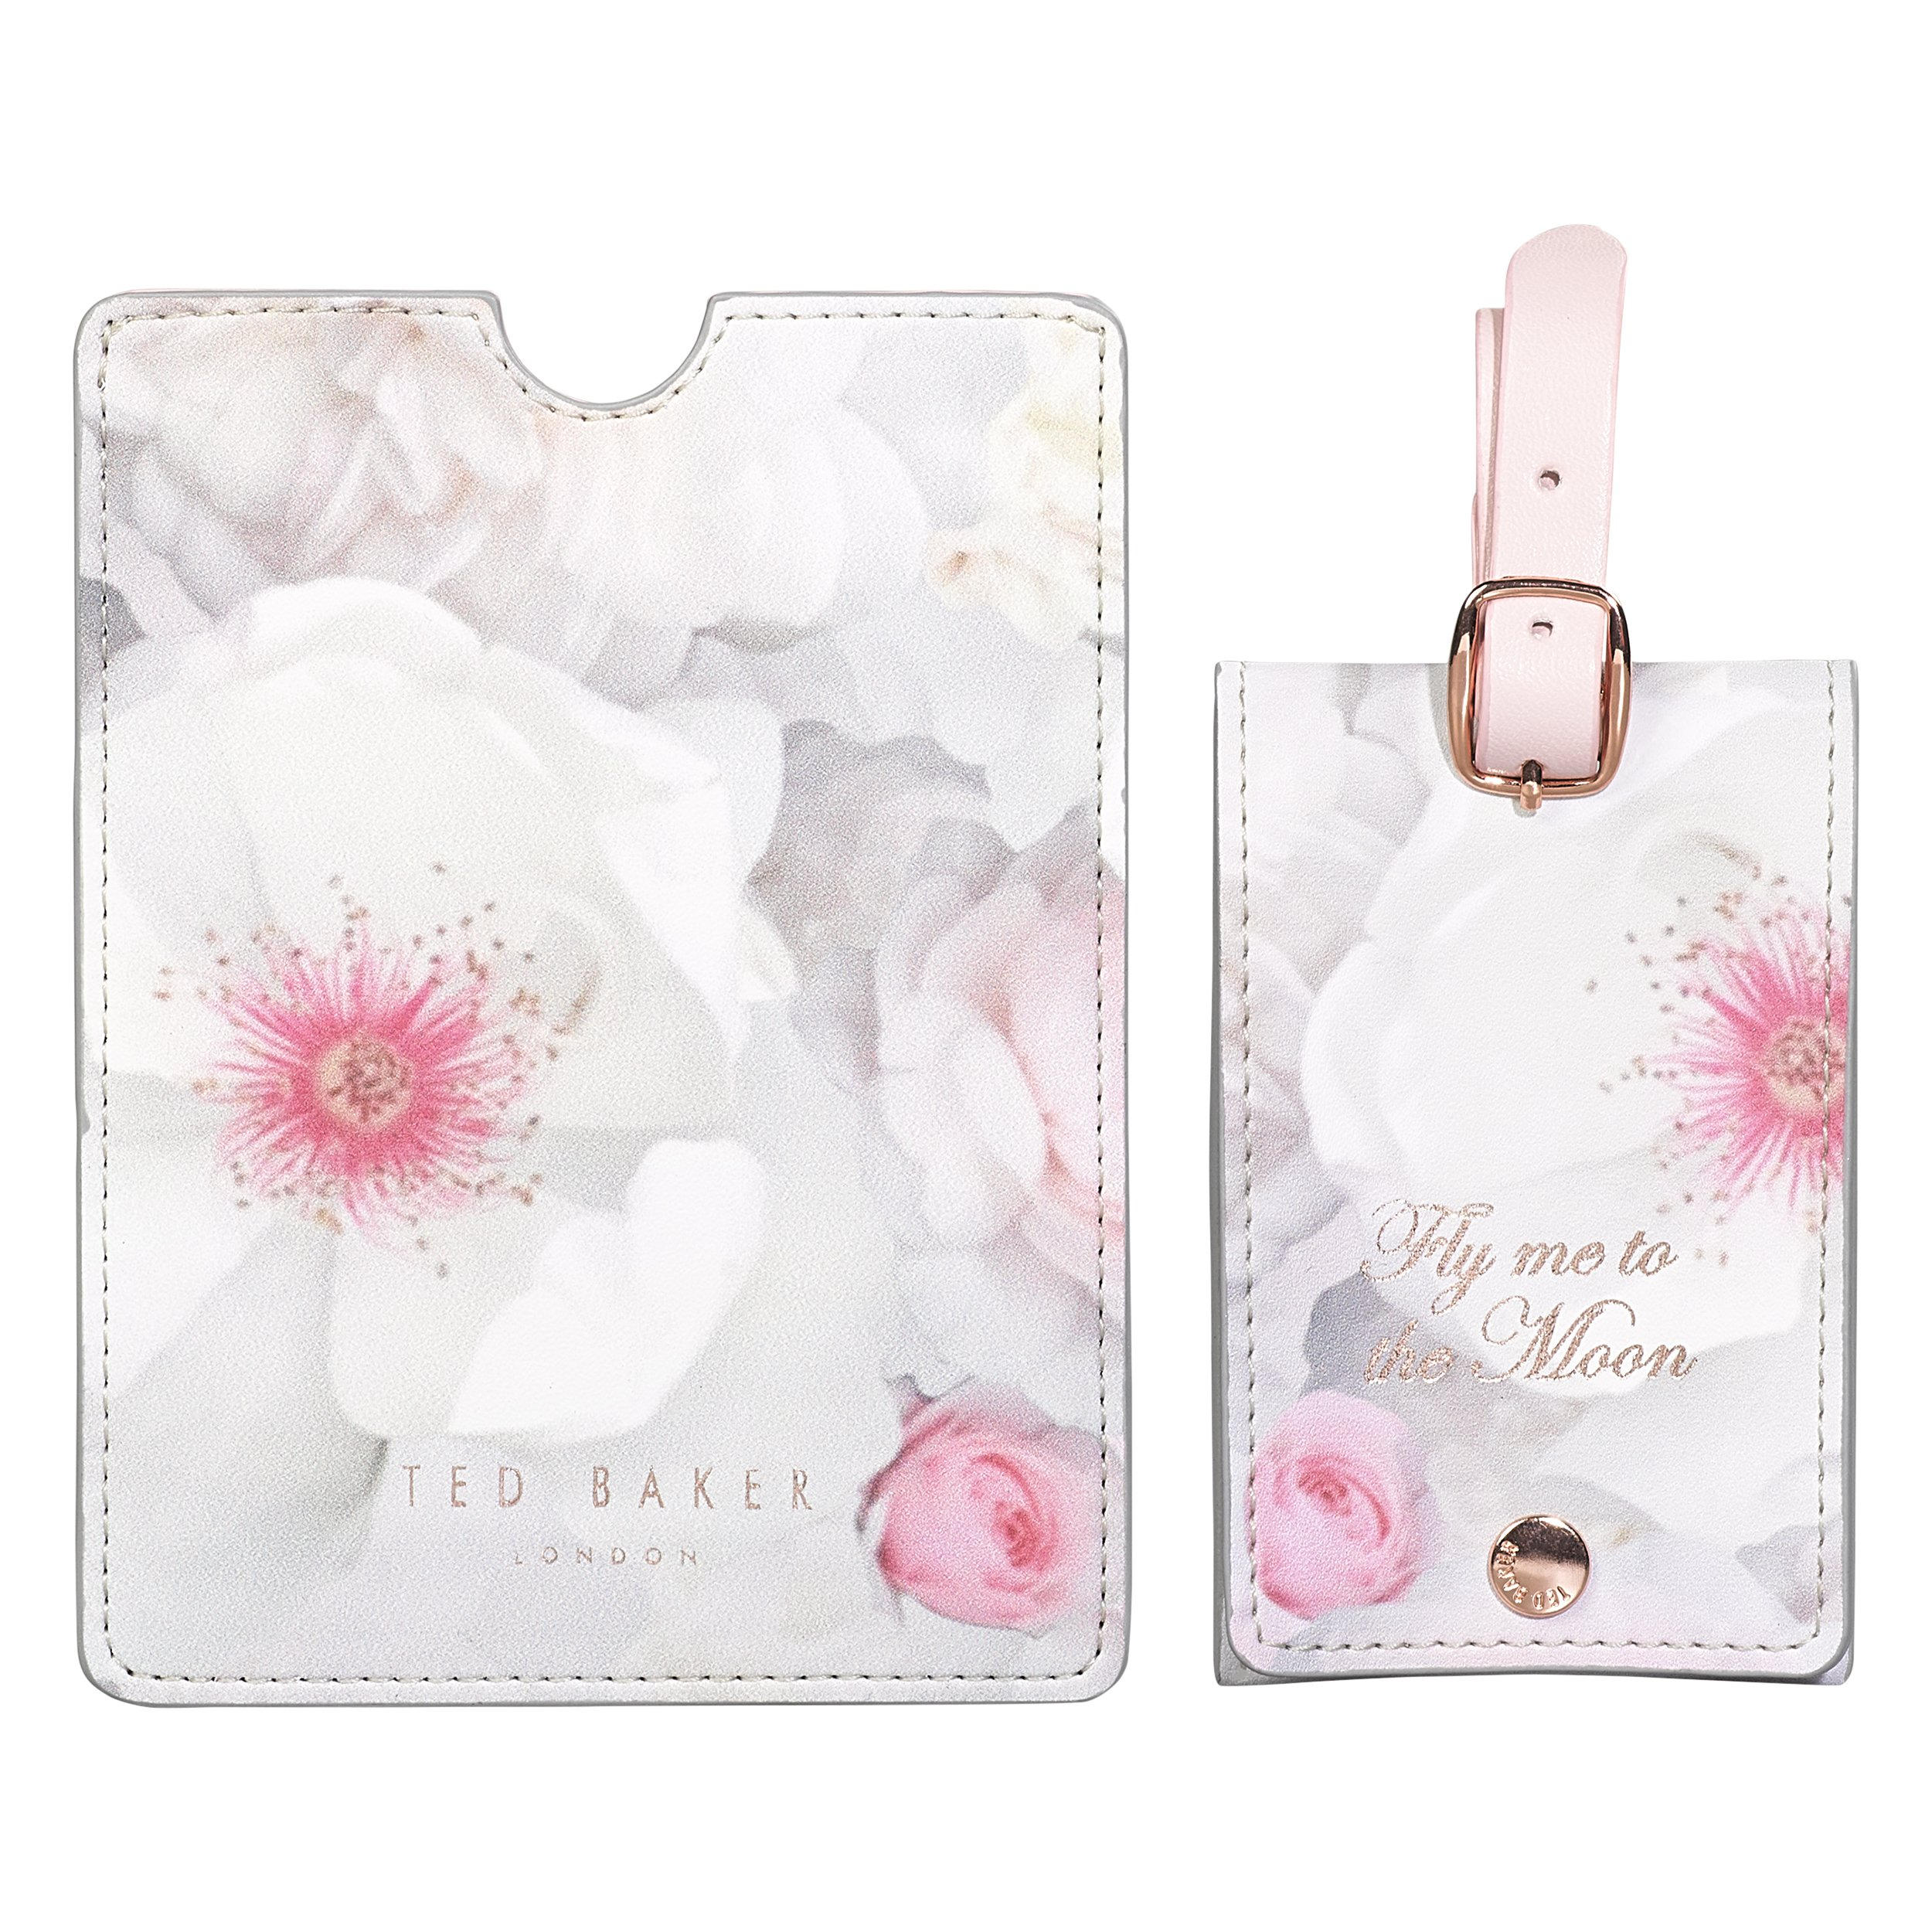 Ted Baker Luggage Tag and Passport Set, Chelsea Border